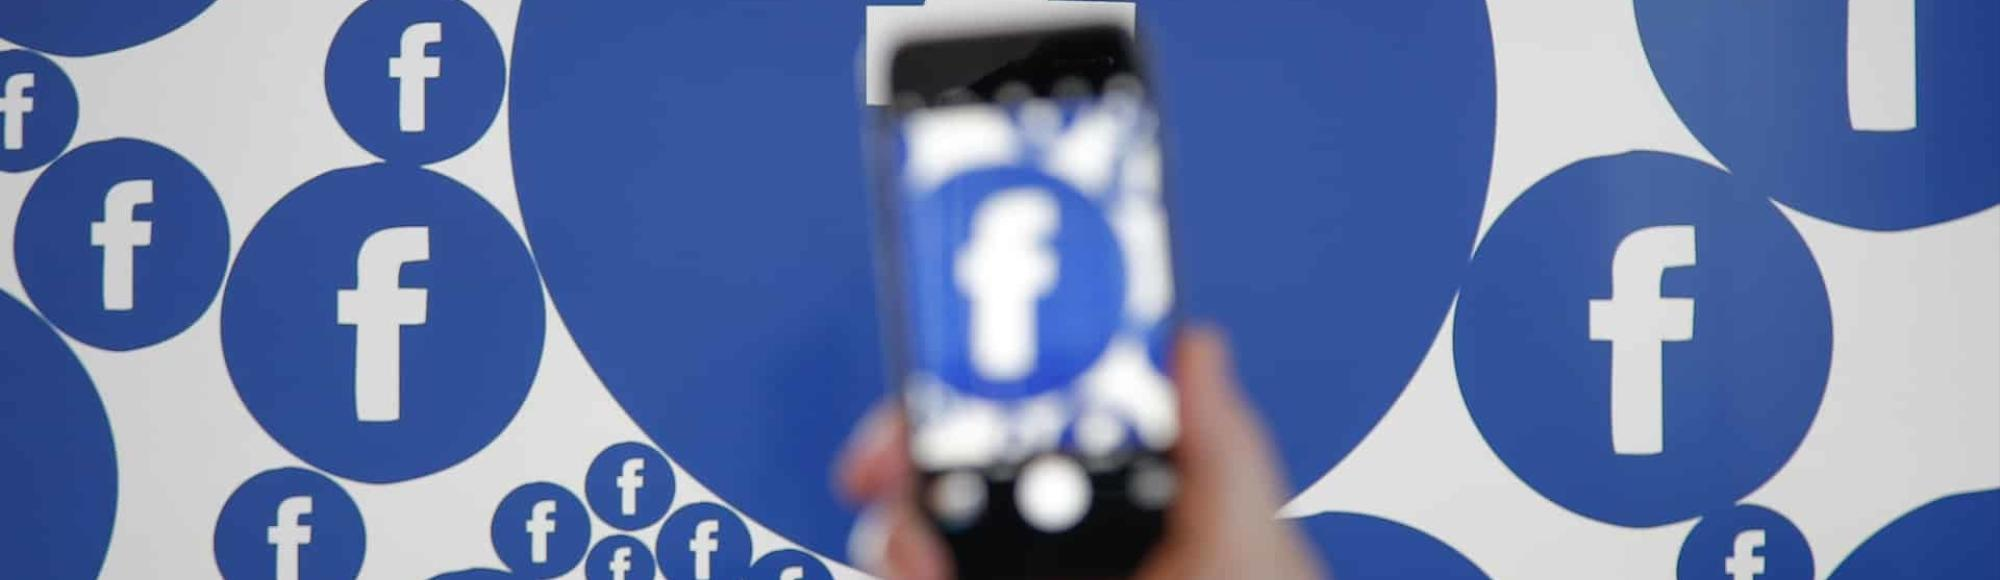 Facebook and Twitter could face big fines for hate speech in Germany